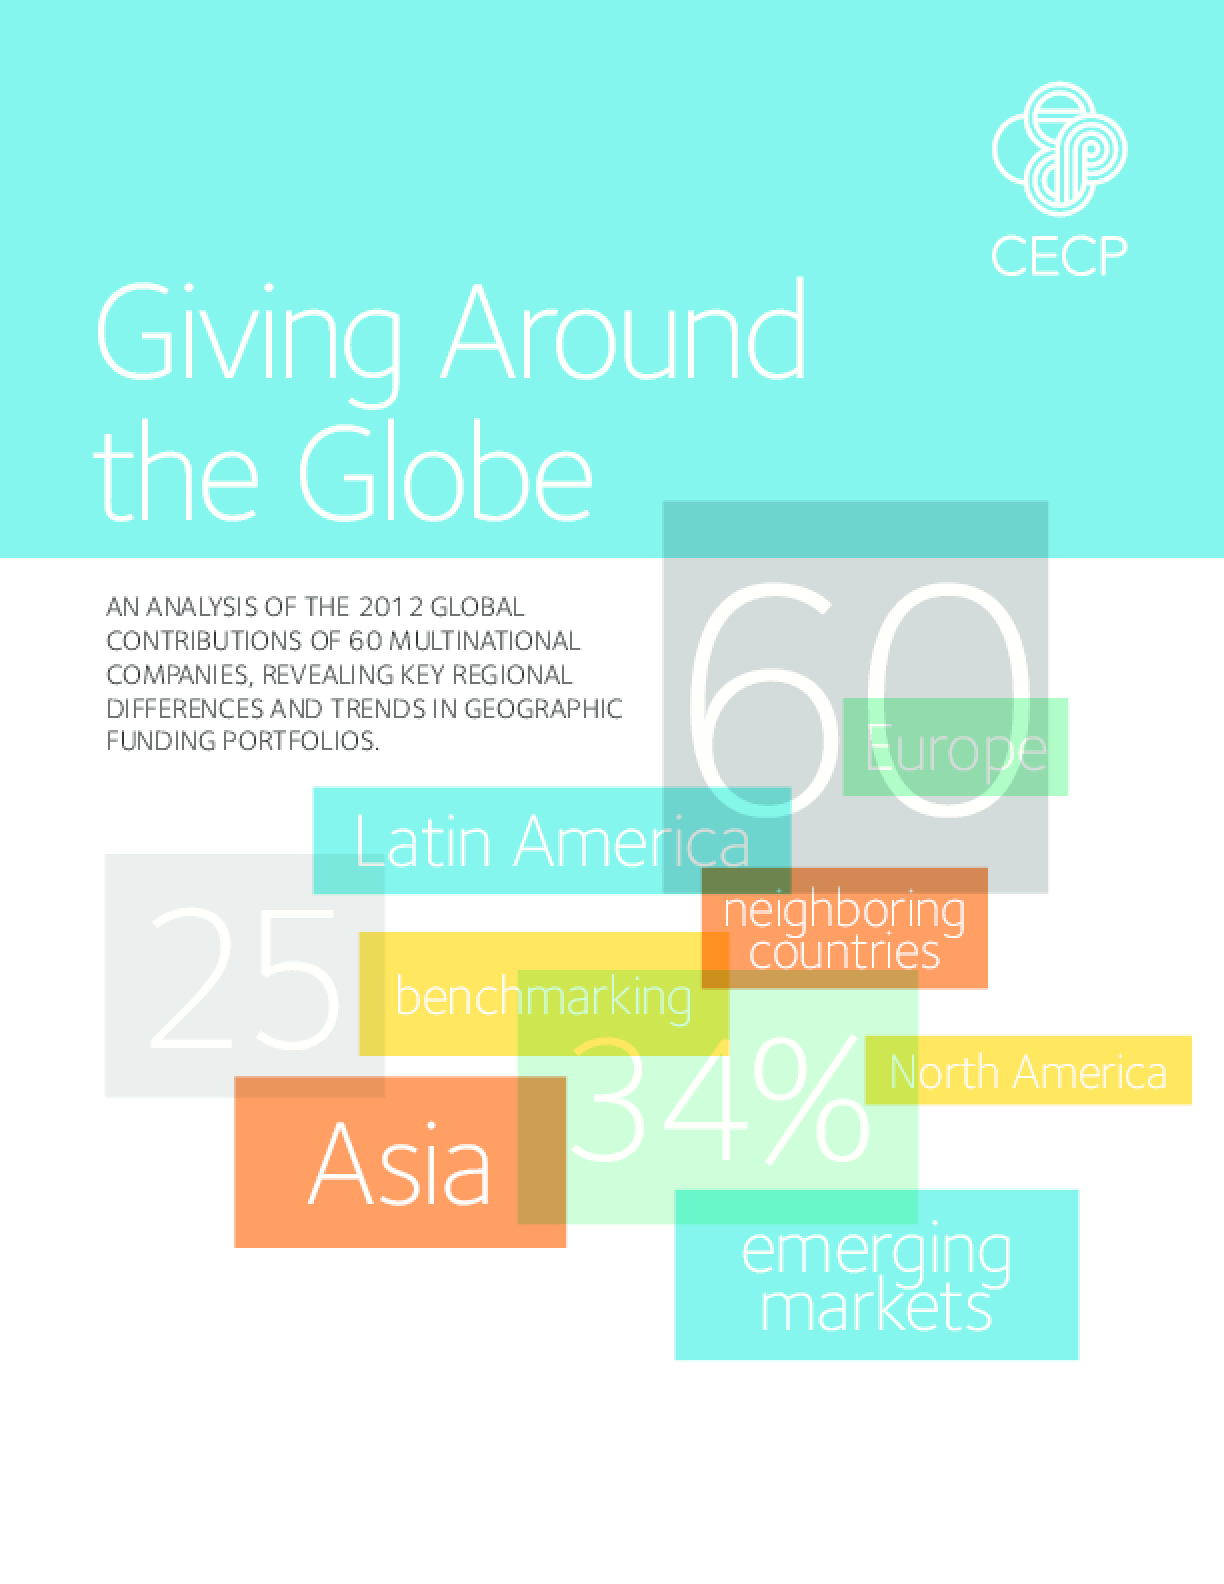 Giving Around the Globe: An Analysis of the 2013 Global Contributions of 60 Multinational Companies, Revealing Key Regional Differences and Trends in Geographic Funding Portfolios